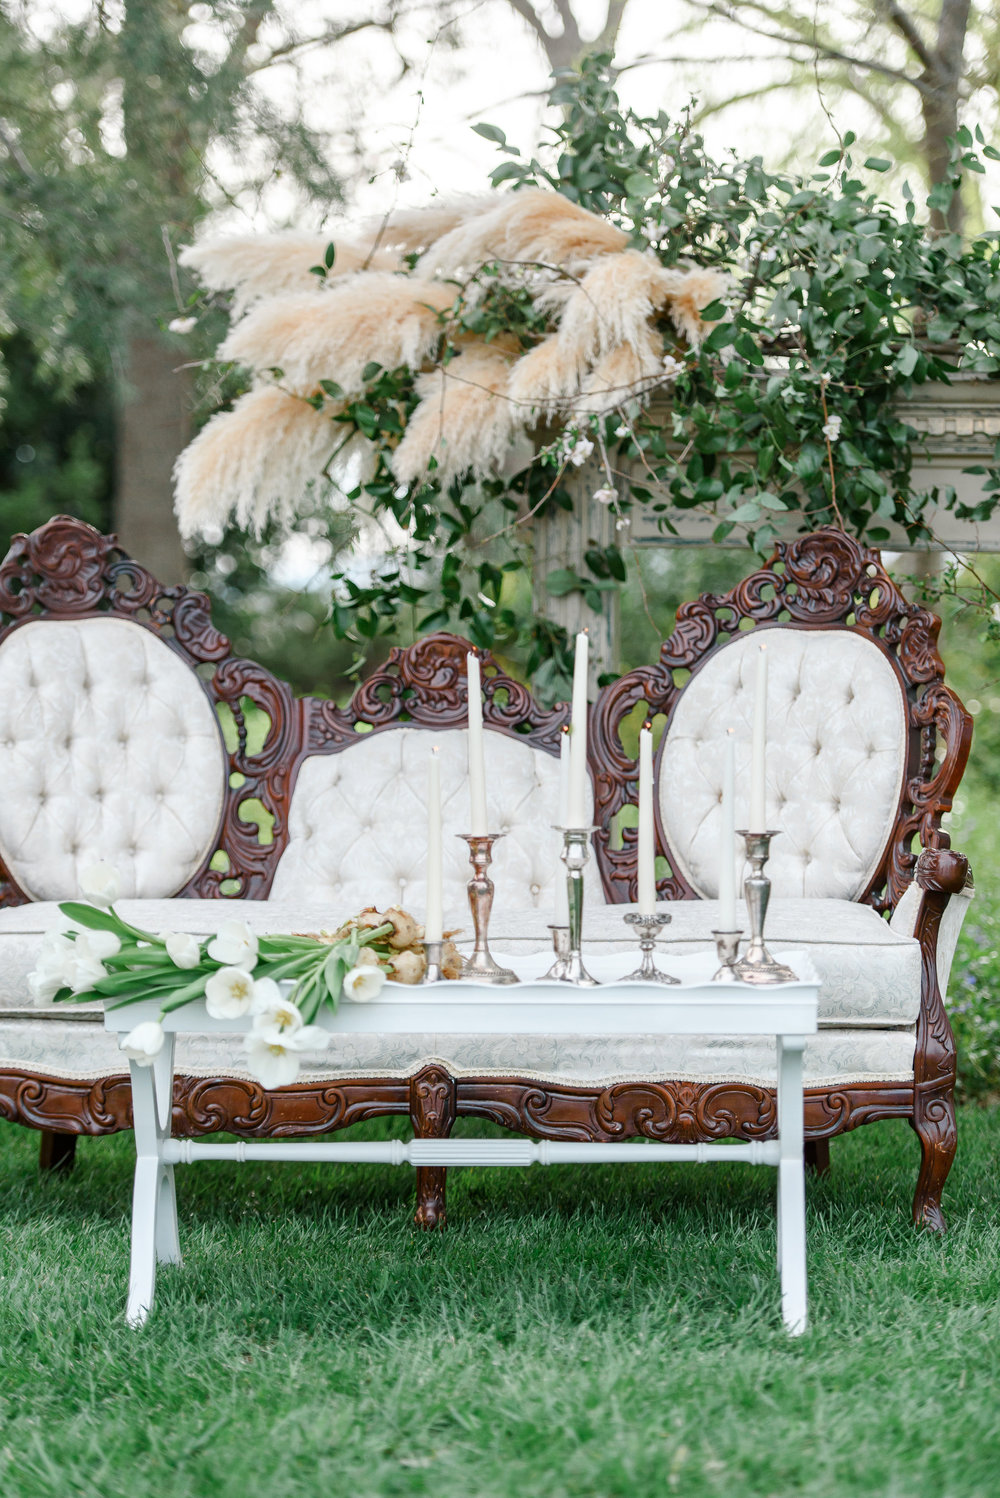 Garden Wedding Inspiration | Vintage Wedding Seating | Wedding Lounge Seating